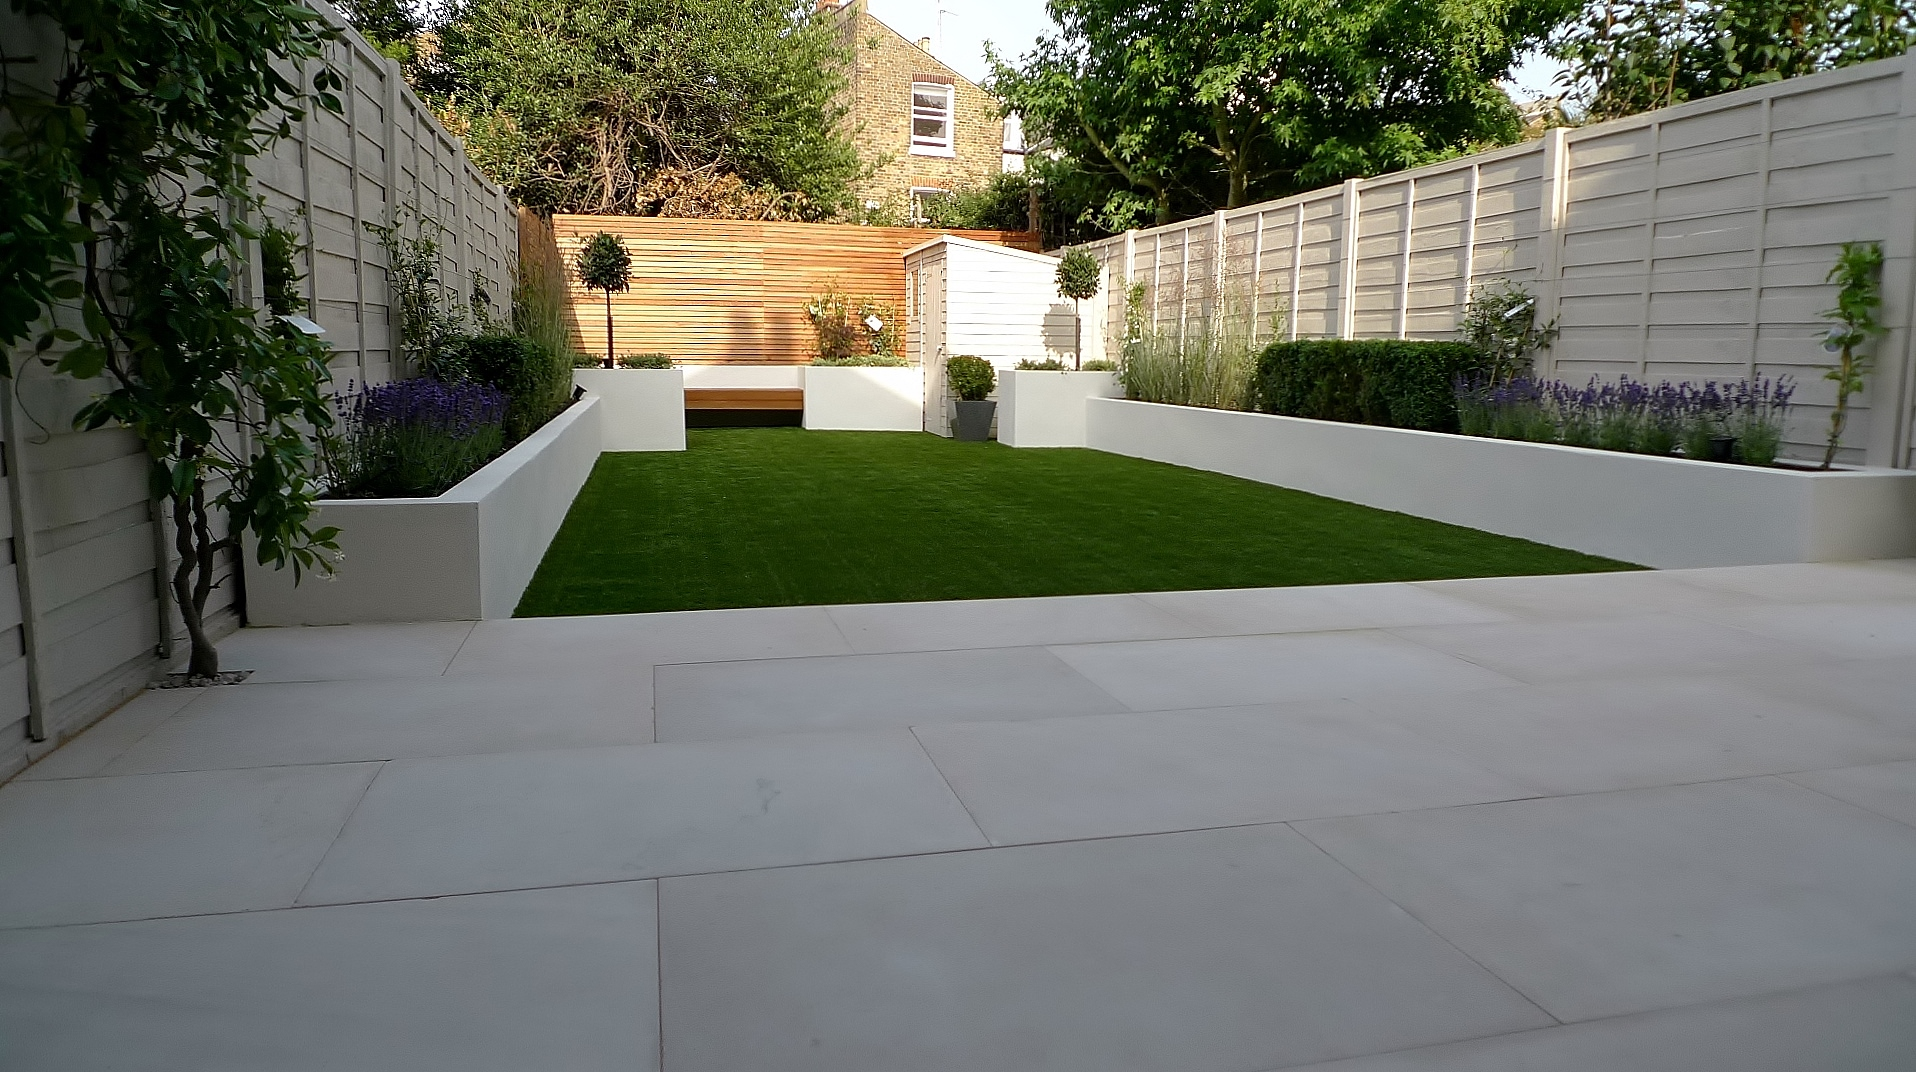 Anewgarden london garden blog for Backyard designs